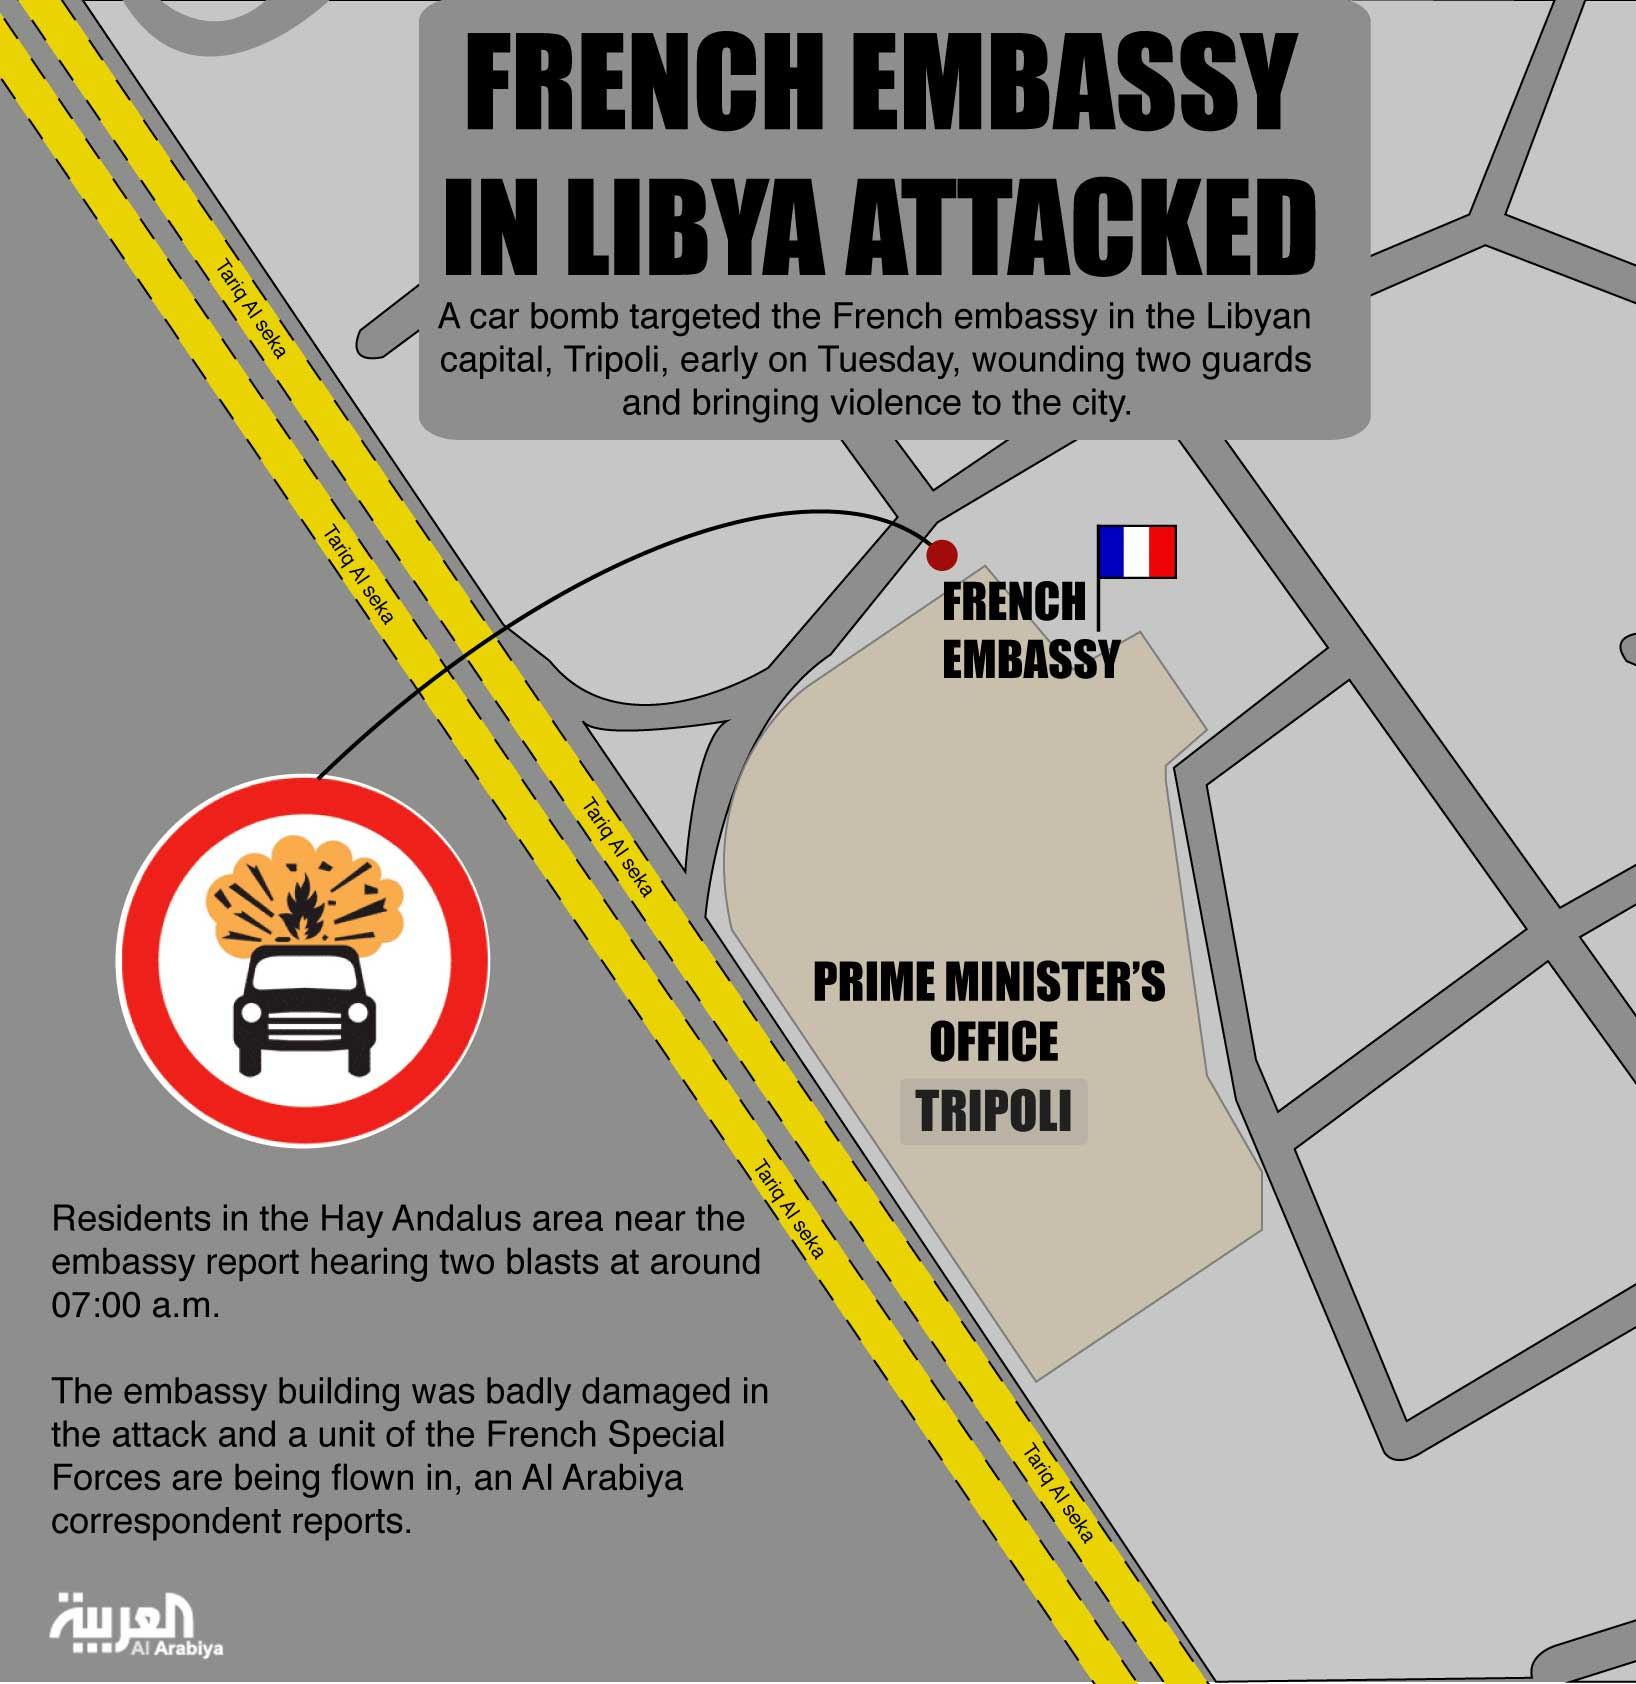 Info graphic: French Embassy in Libya attacked (Design by Farwa Rizwan / Al Arabiya English)